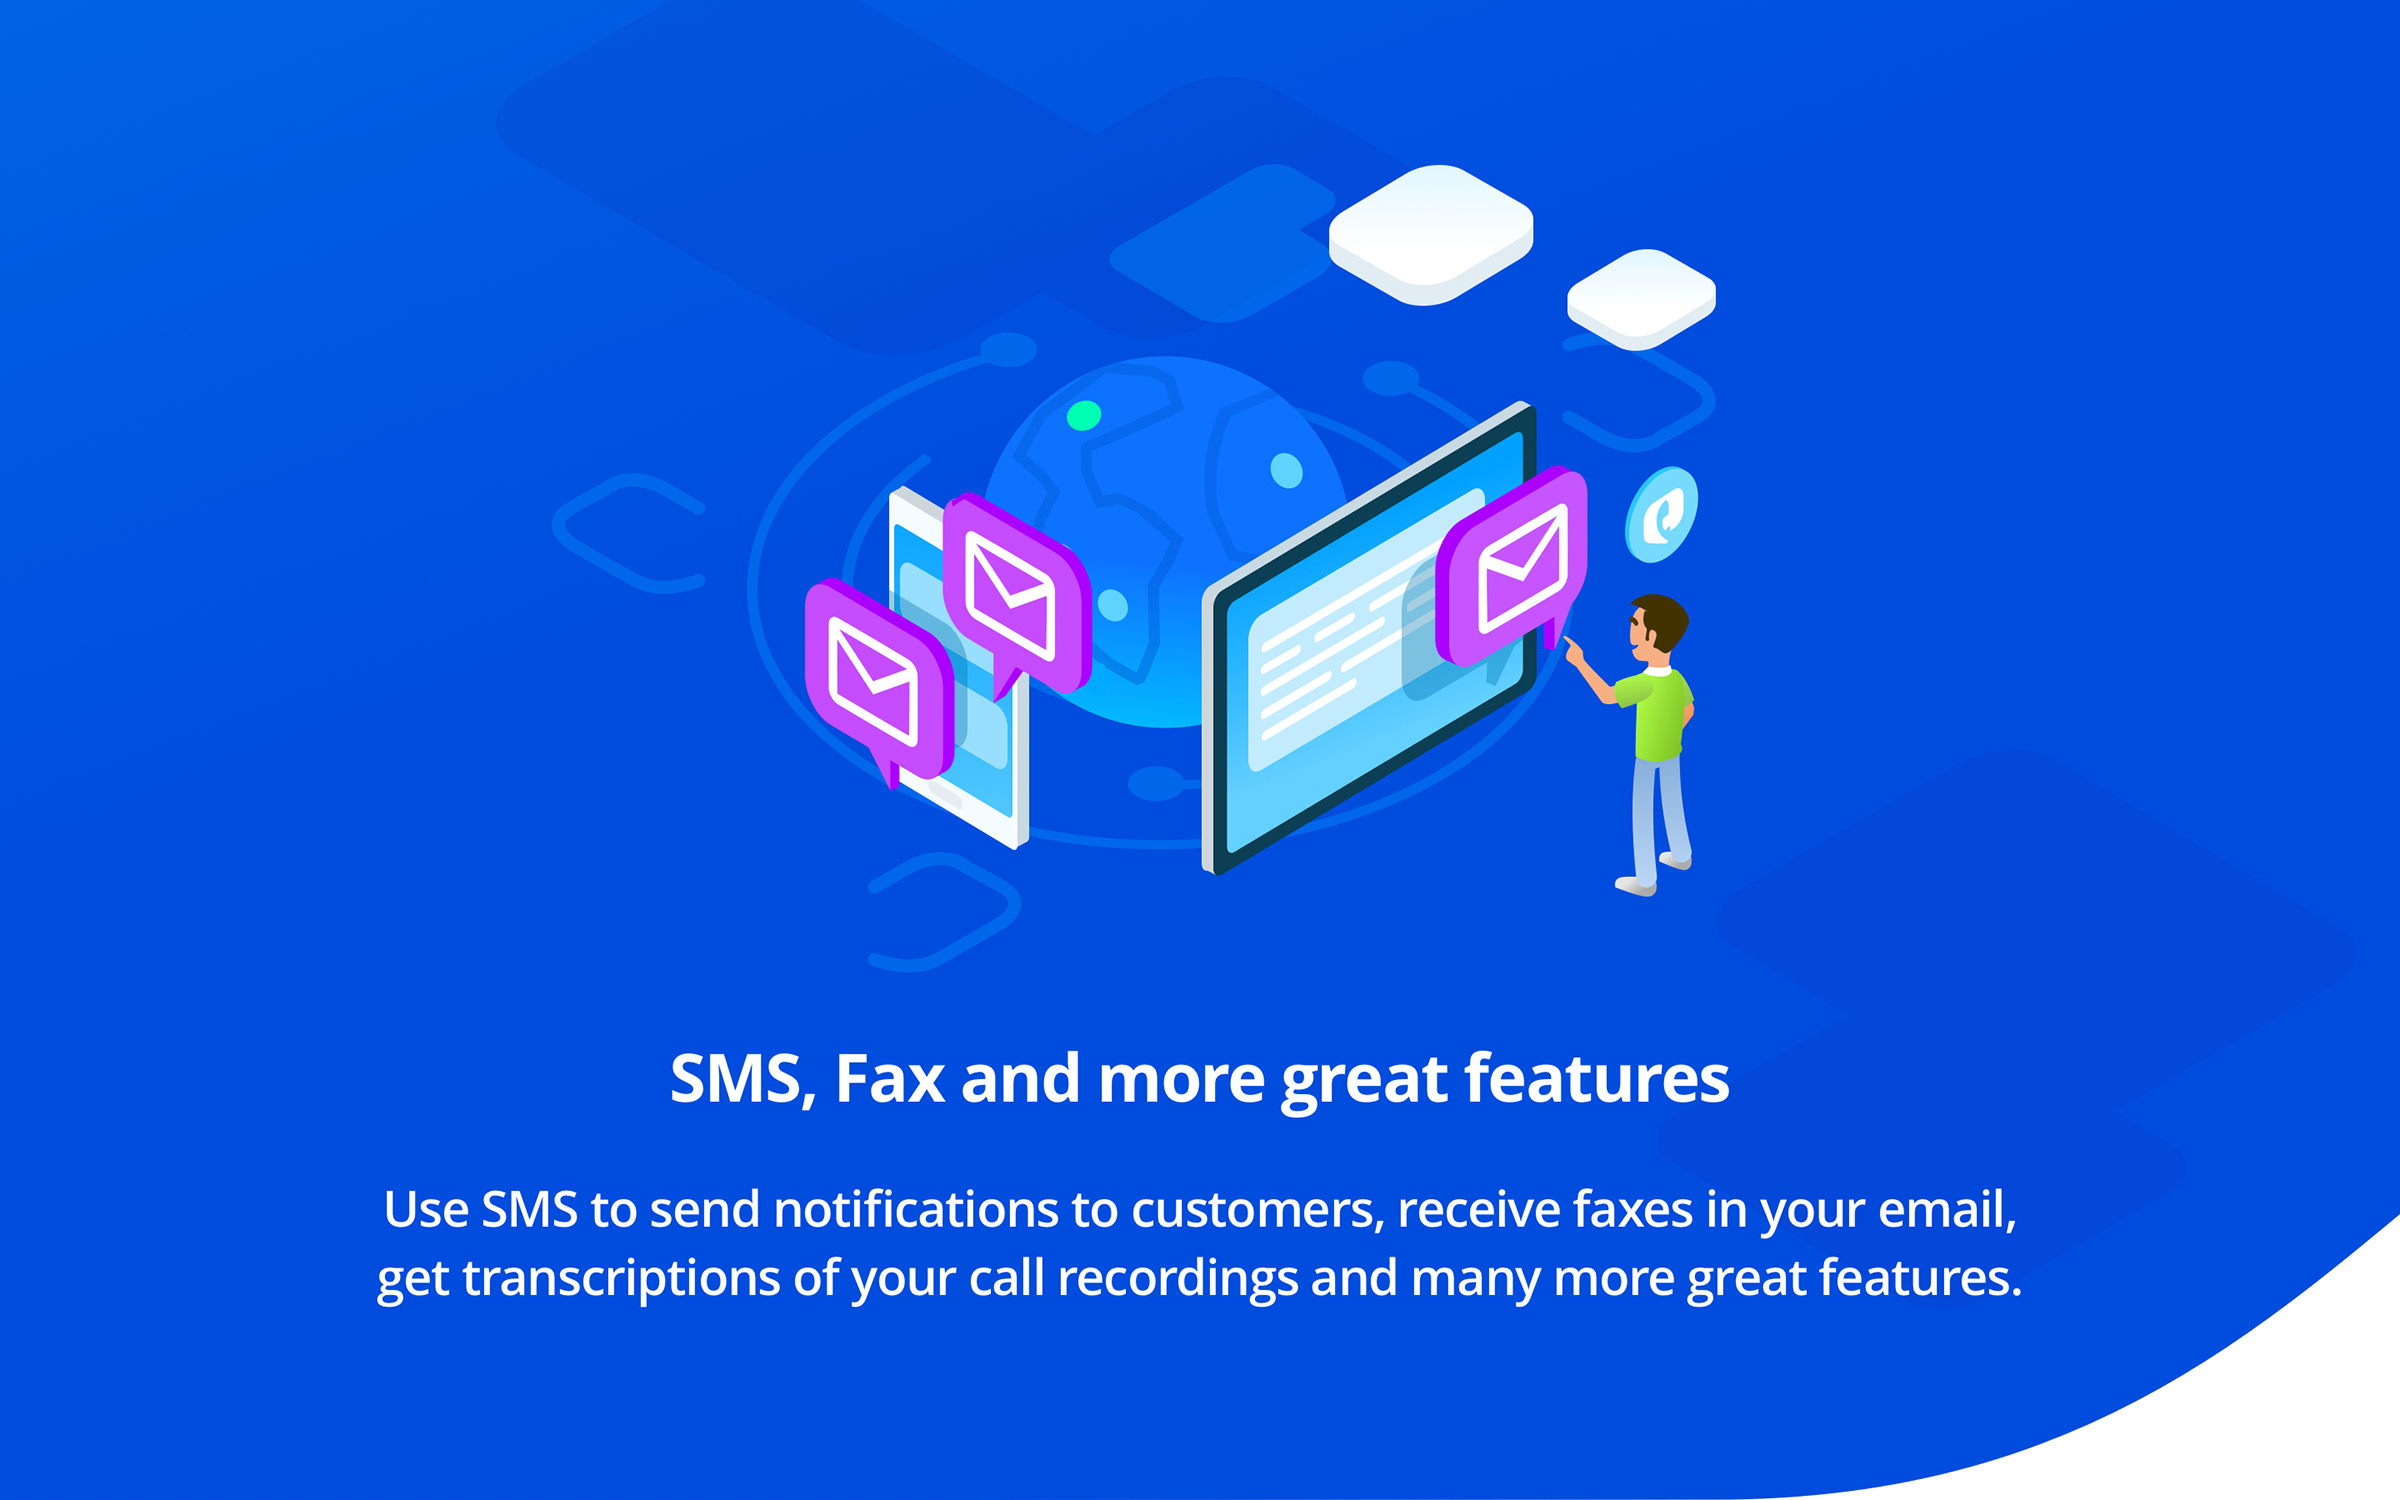 Toky Demo - SMS, Fax and more great features